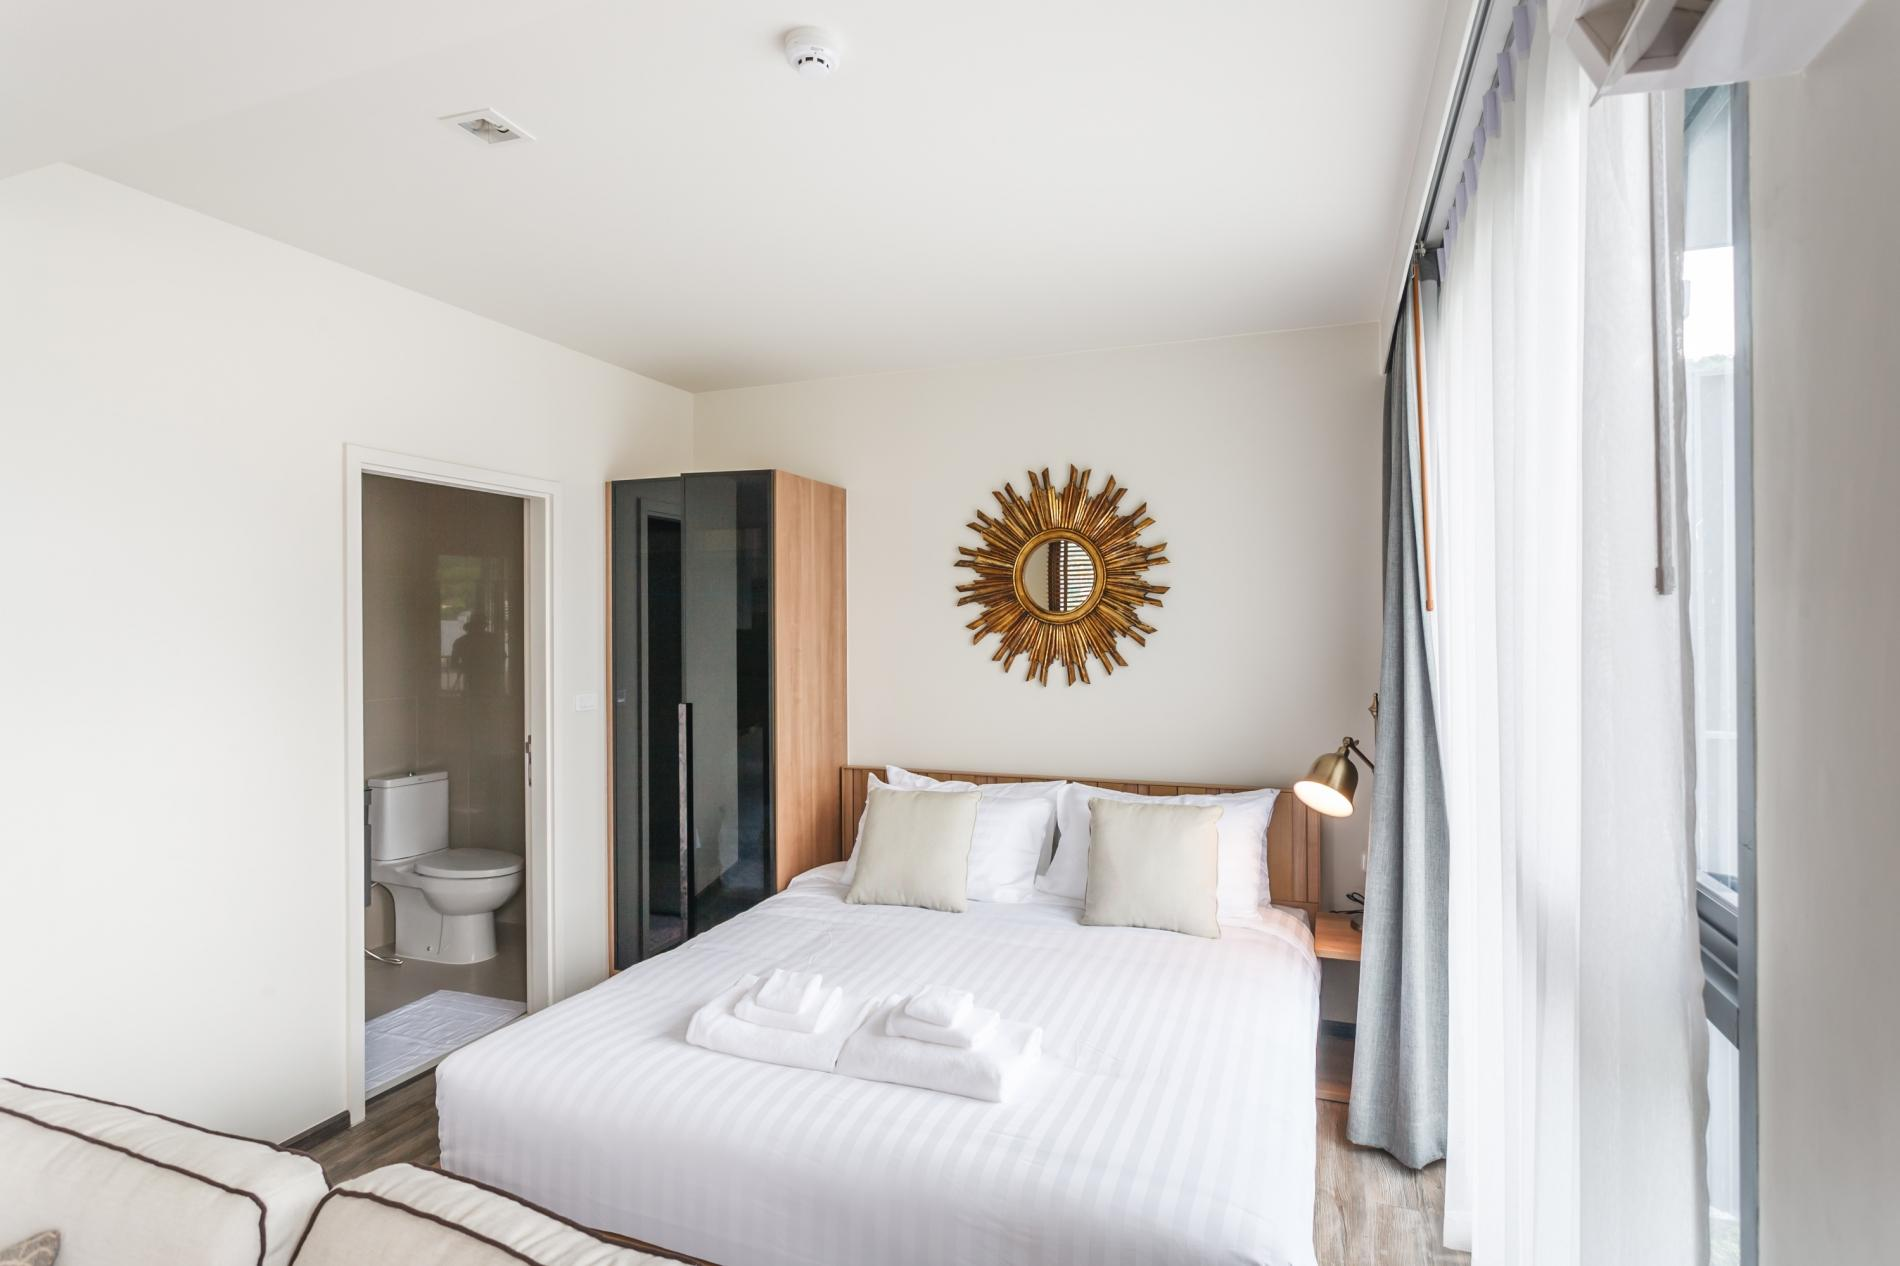 Apartment D219 - Brand new Patong studio  convenient location  great value  photo 20319214